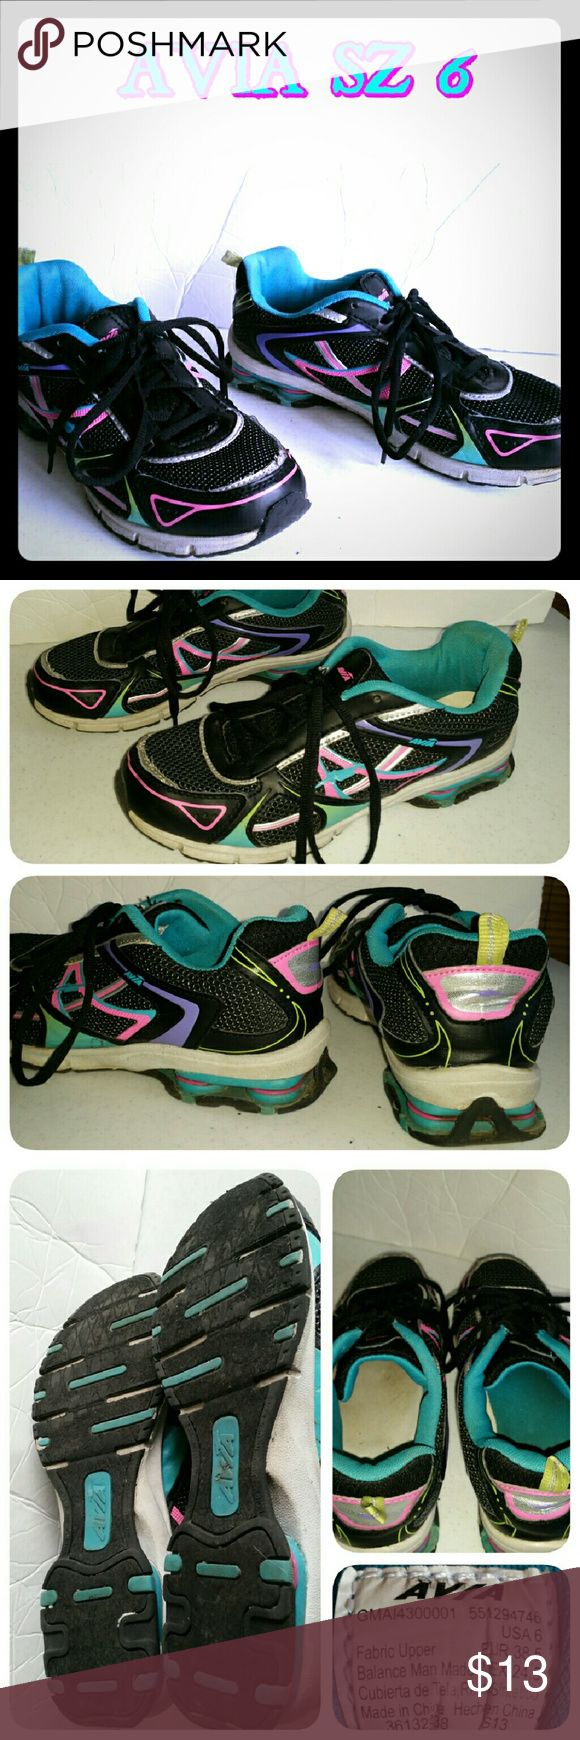 AVIA SZ 6 These say sz 6 but they fit like a 7 Very good condition avia Shoes Athletic Shoes